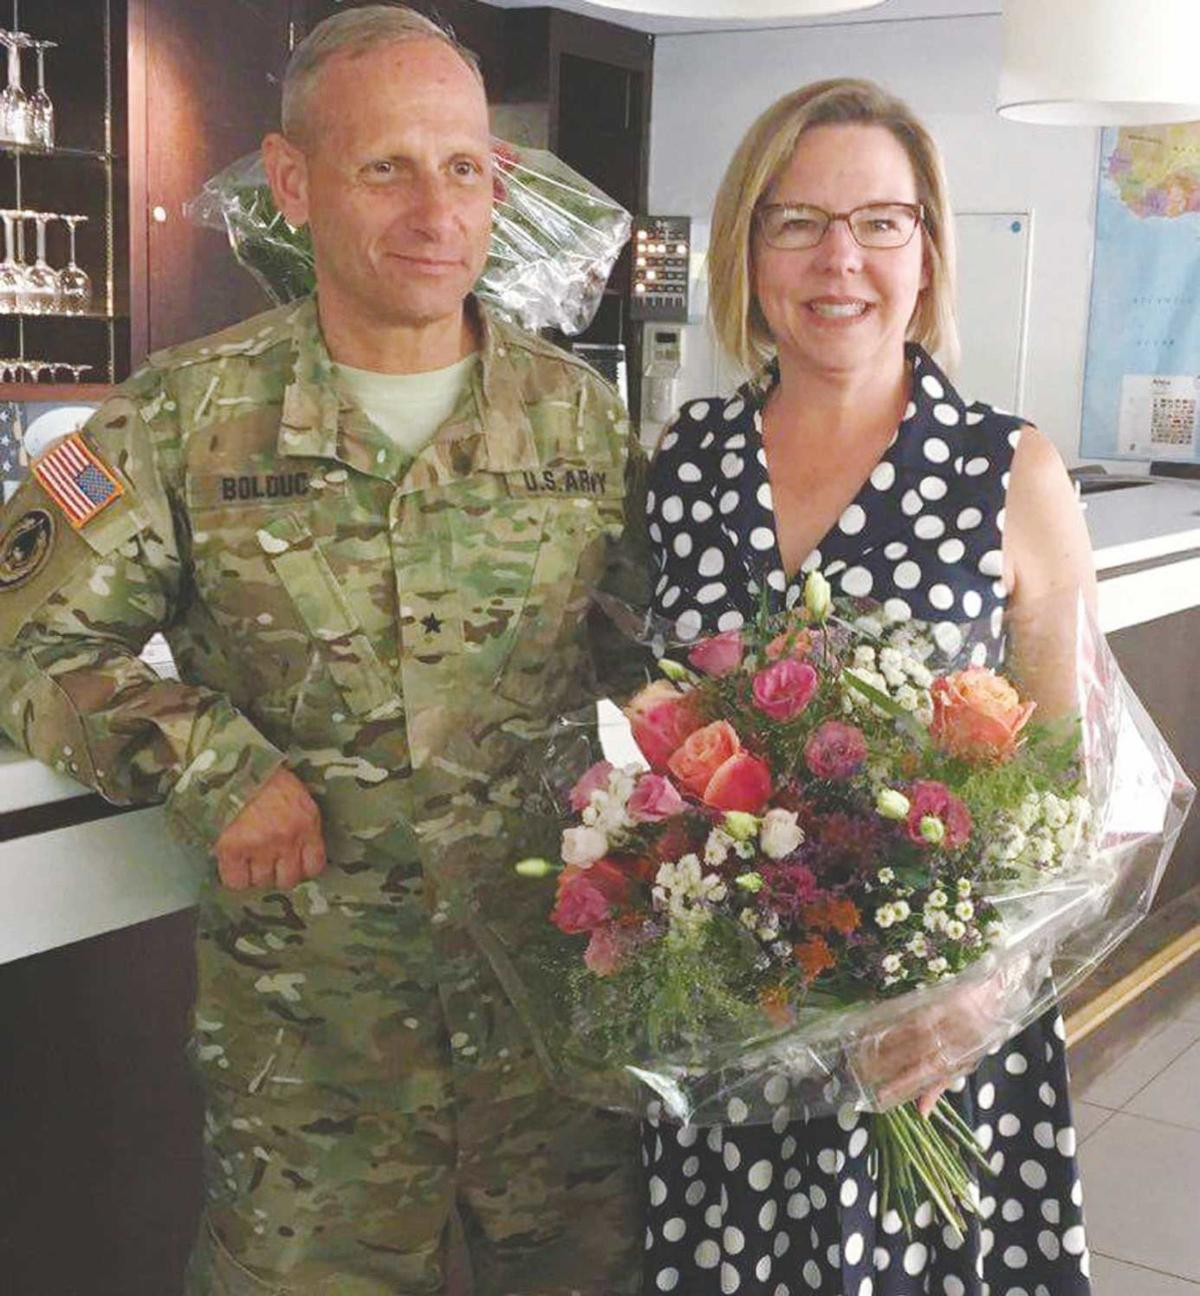 Brigadier General Donald Bolduc, with his wife, Sharon.